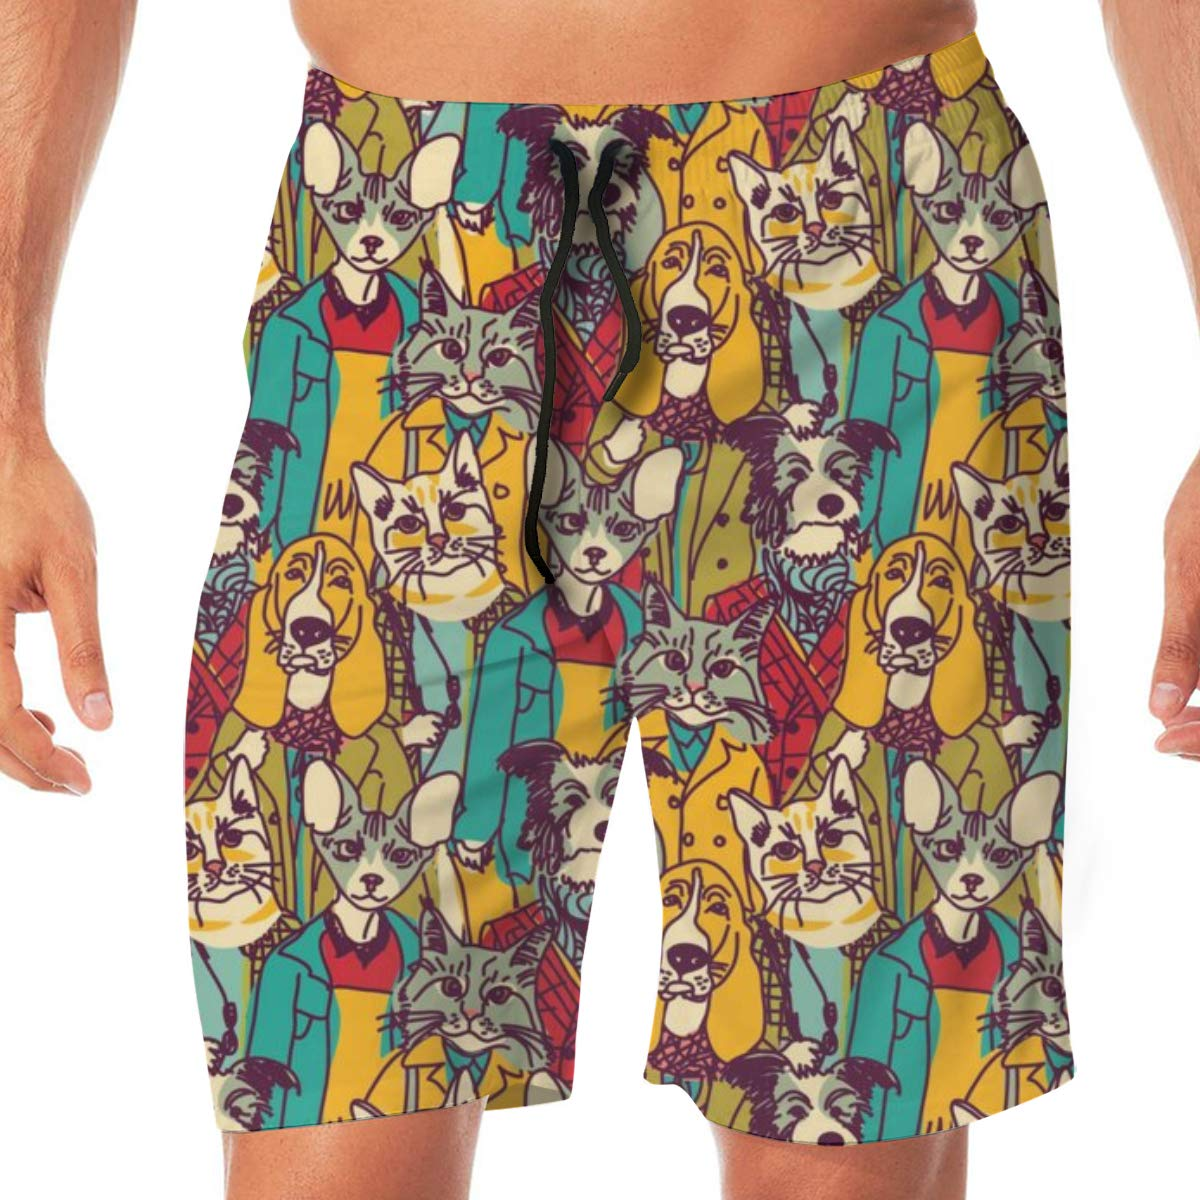 TR2YU7YT Crowd People Like Cats and Dogs Casual Mens Swim Trunks Quick Dry Printed Beach Shorts Summer Boardshorts Bathing Suits with Drawstring